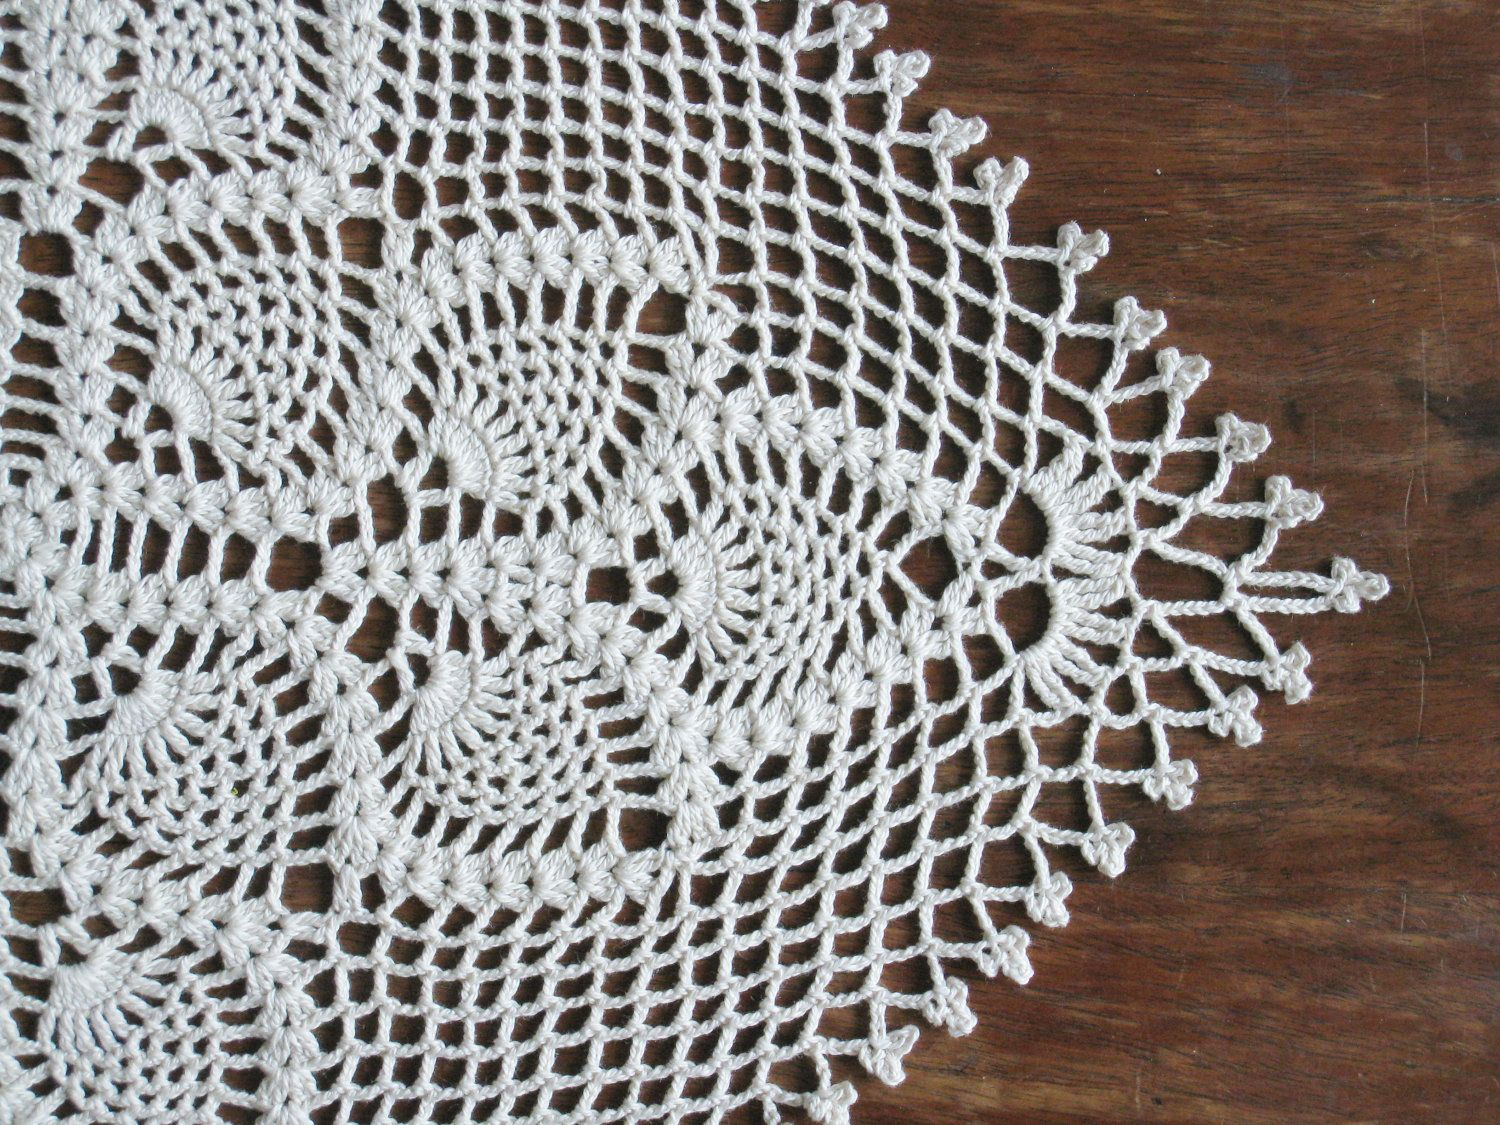 Crochet Square Table Runner Lace Table Cloth - Natural Shabby Chic ...